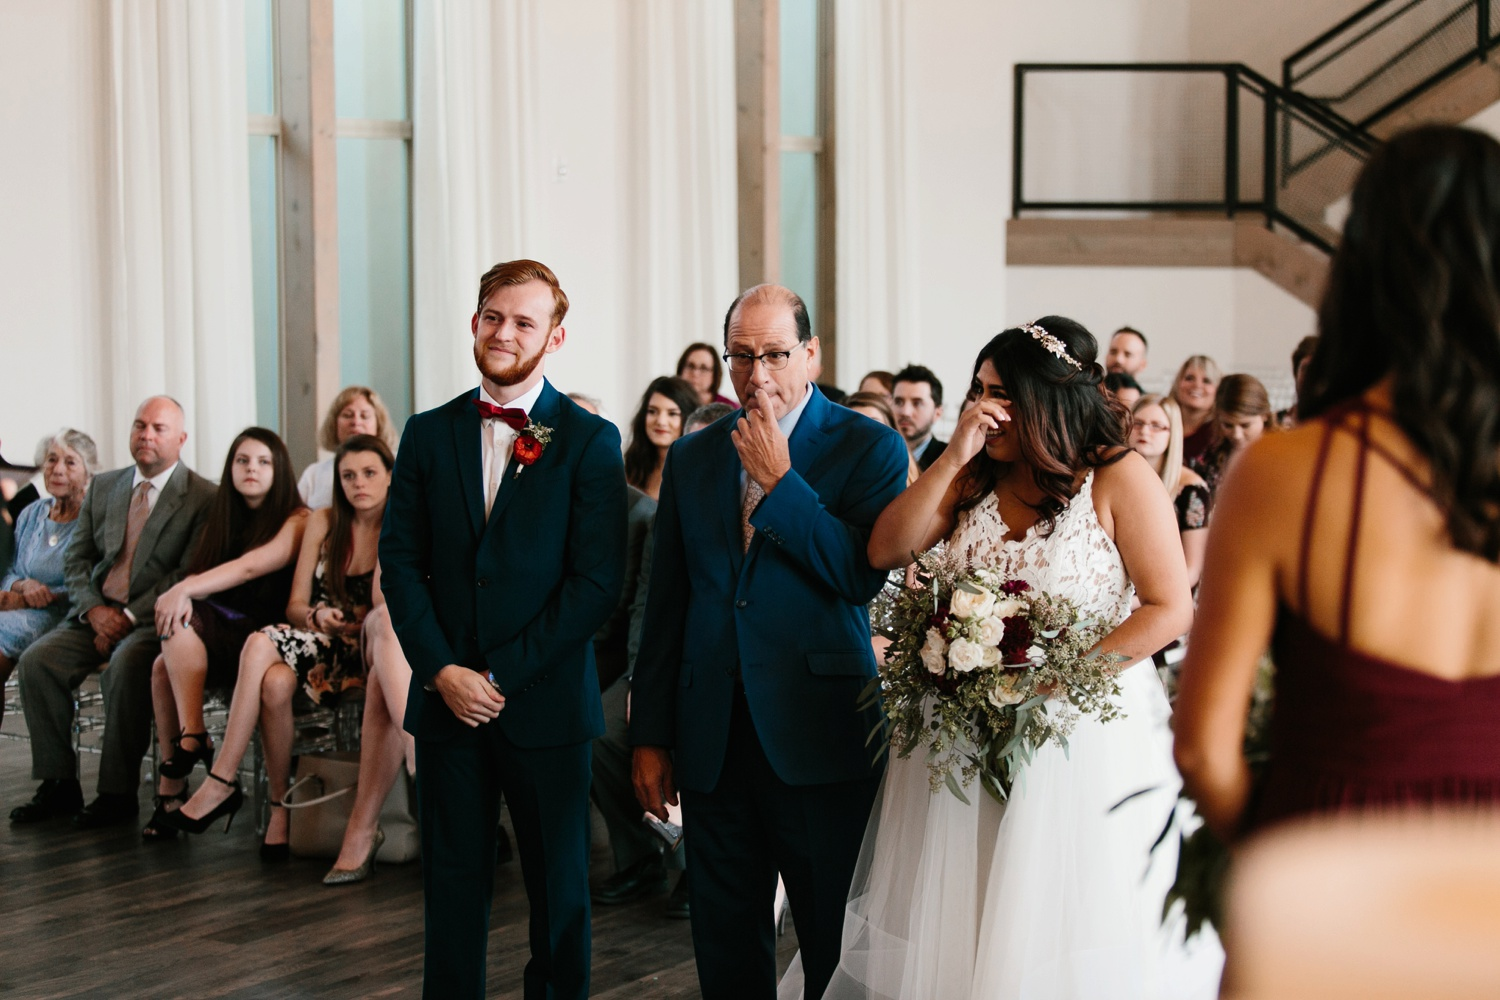 Grant + Lysette | a vibrant, deep burgundy and navy, and mixed metals wedding at Hidden Pines Chapel by North Texas Wedding Photographer Rachel Meagan Photography 065